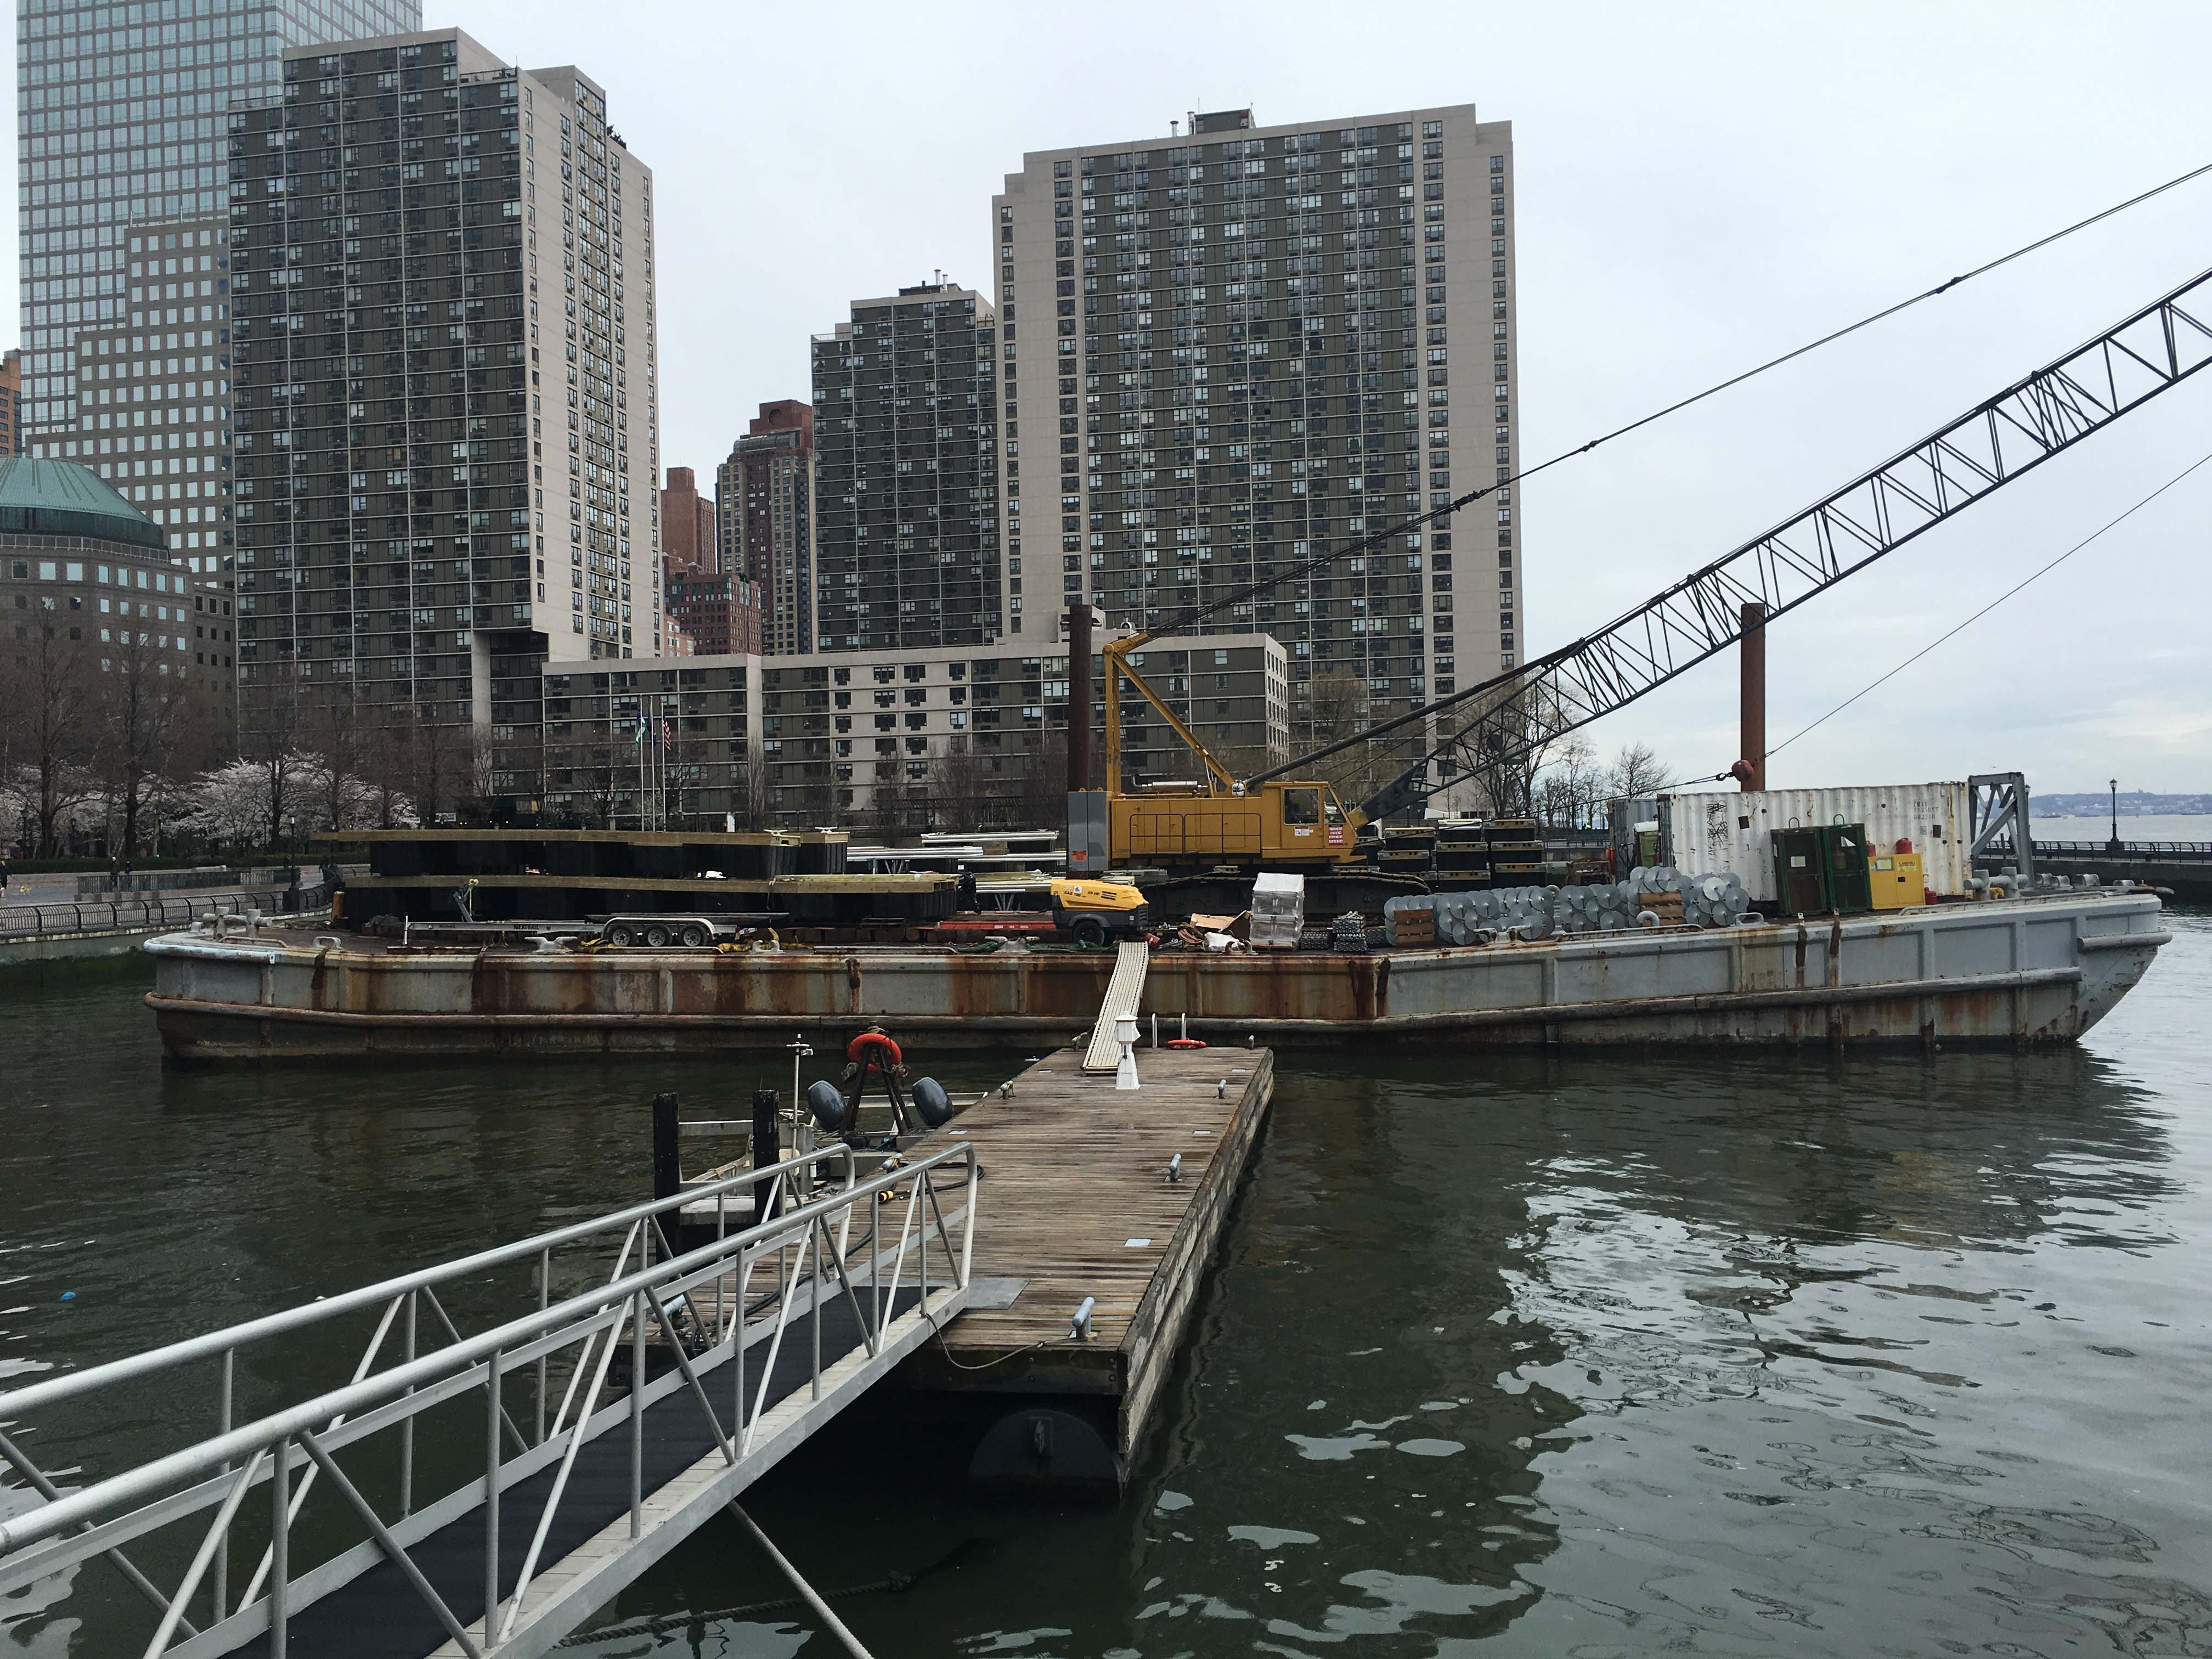 North Cove Marina barge for docks